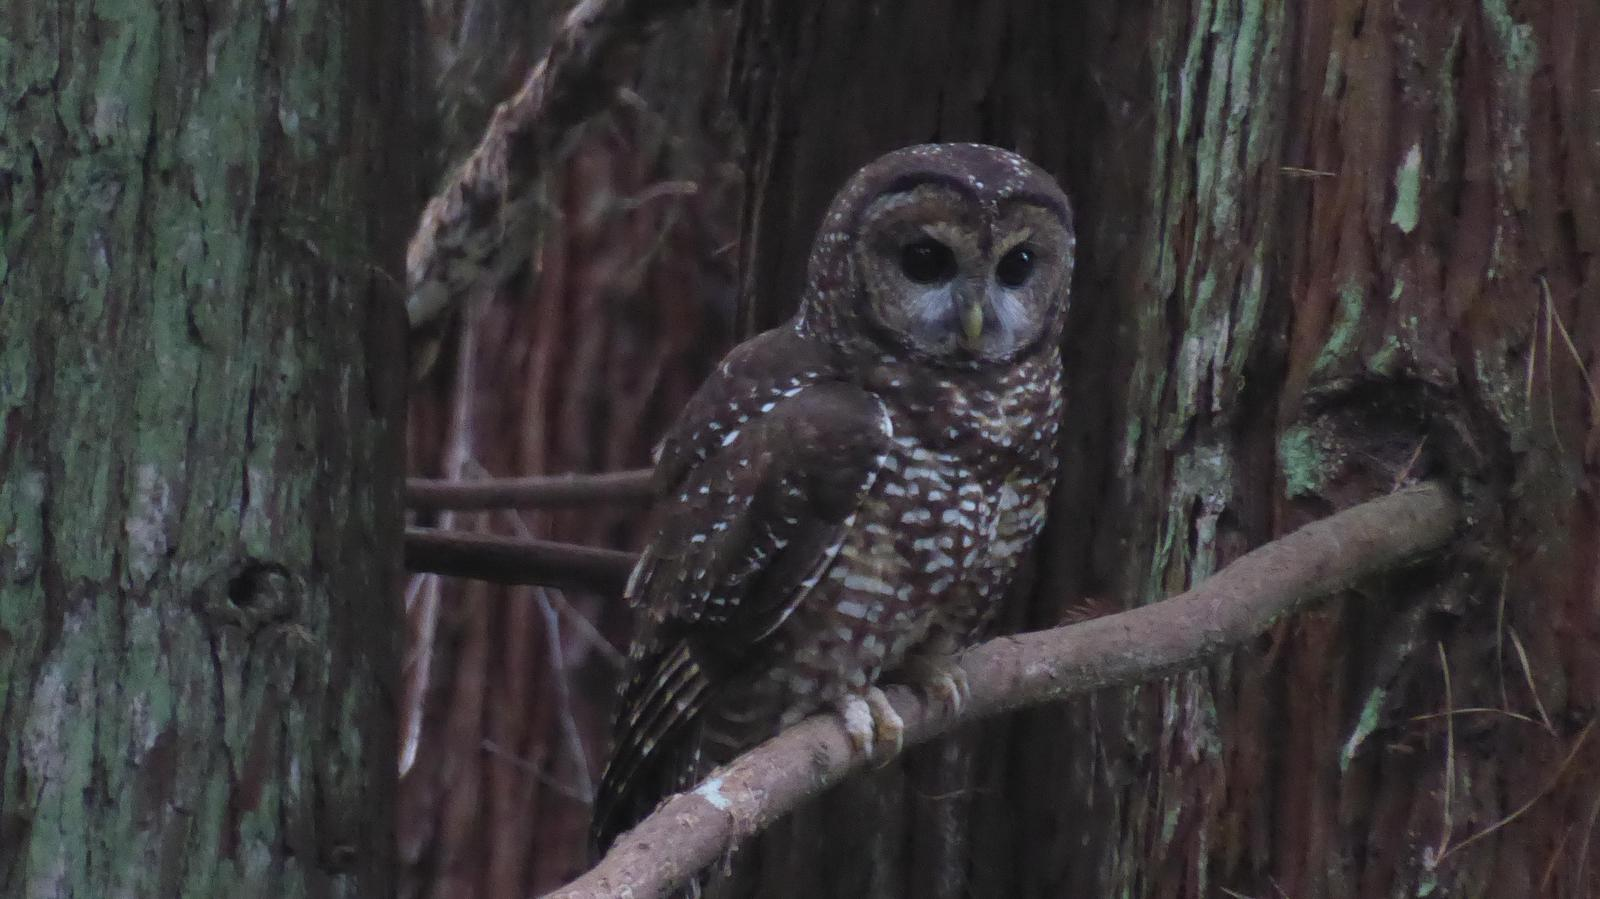 Spotted Owl Photo by Daliel Leite